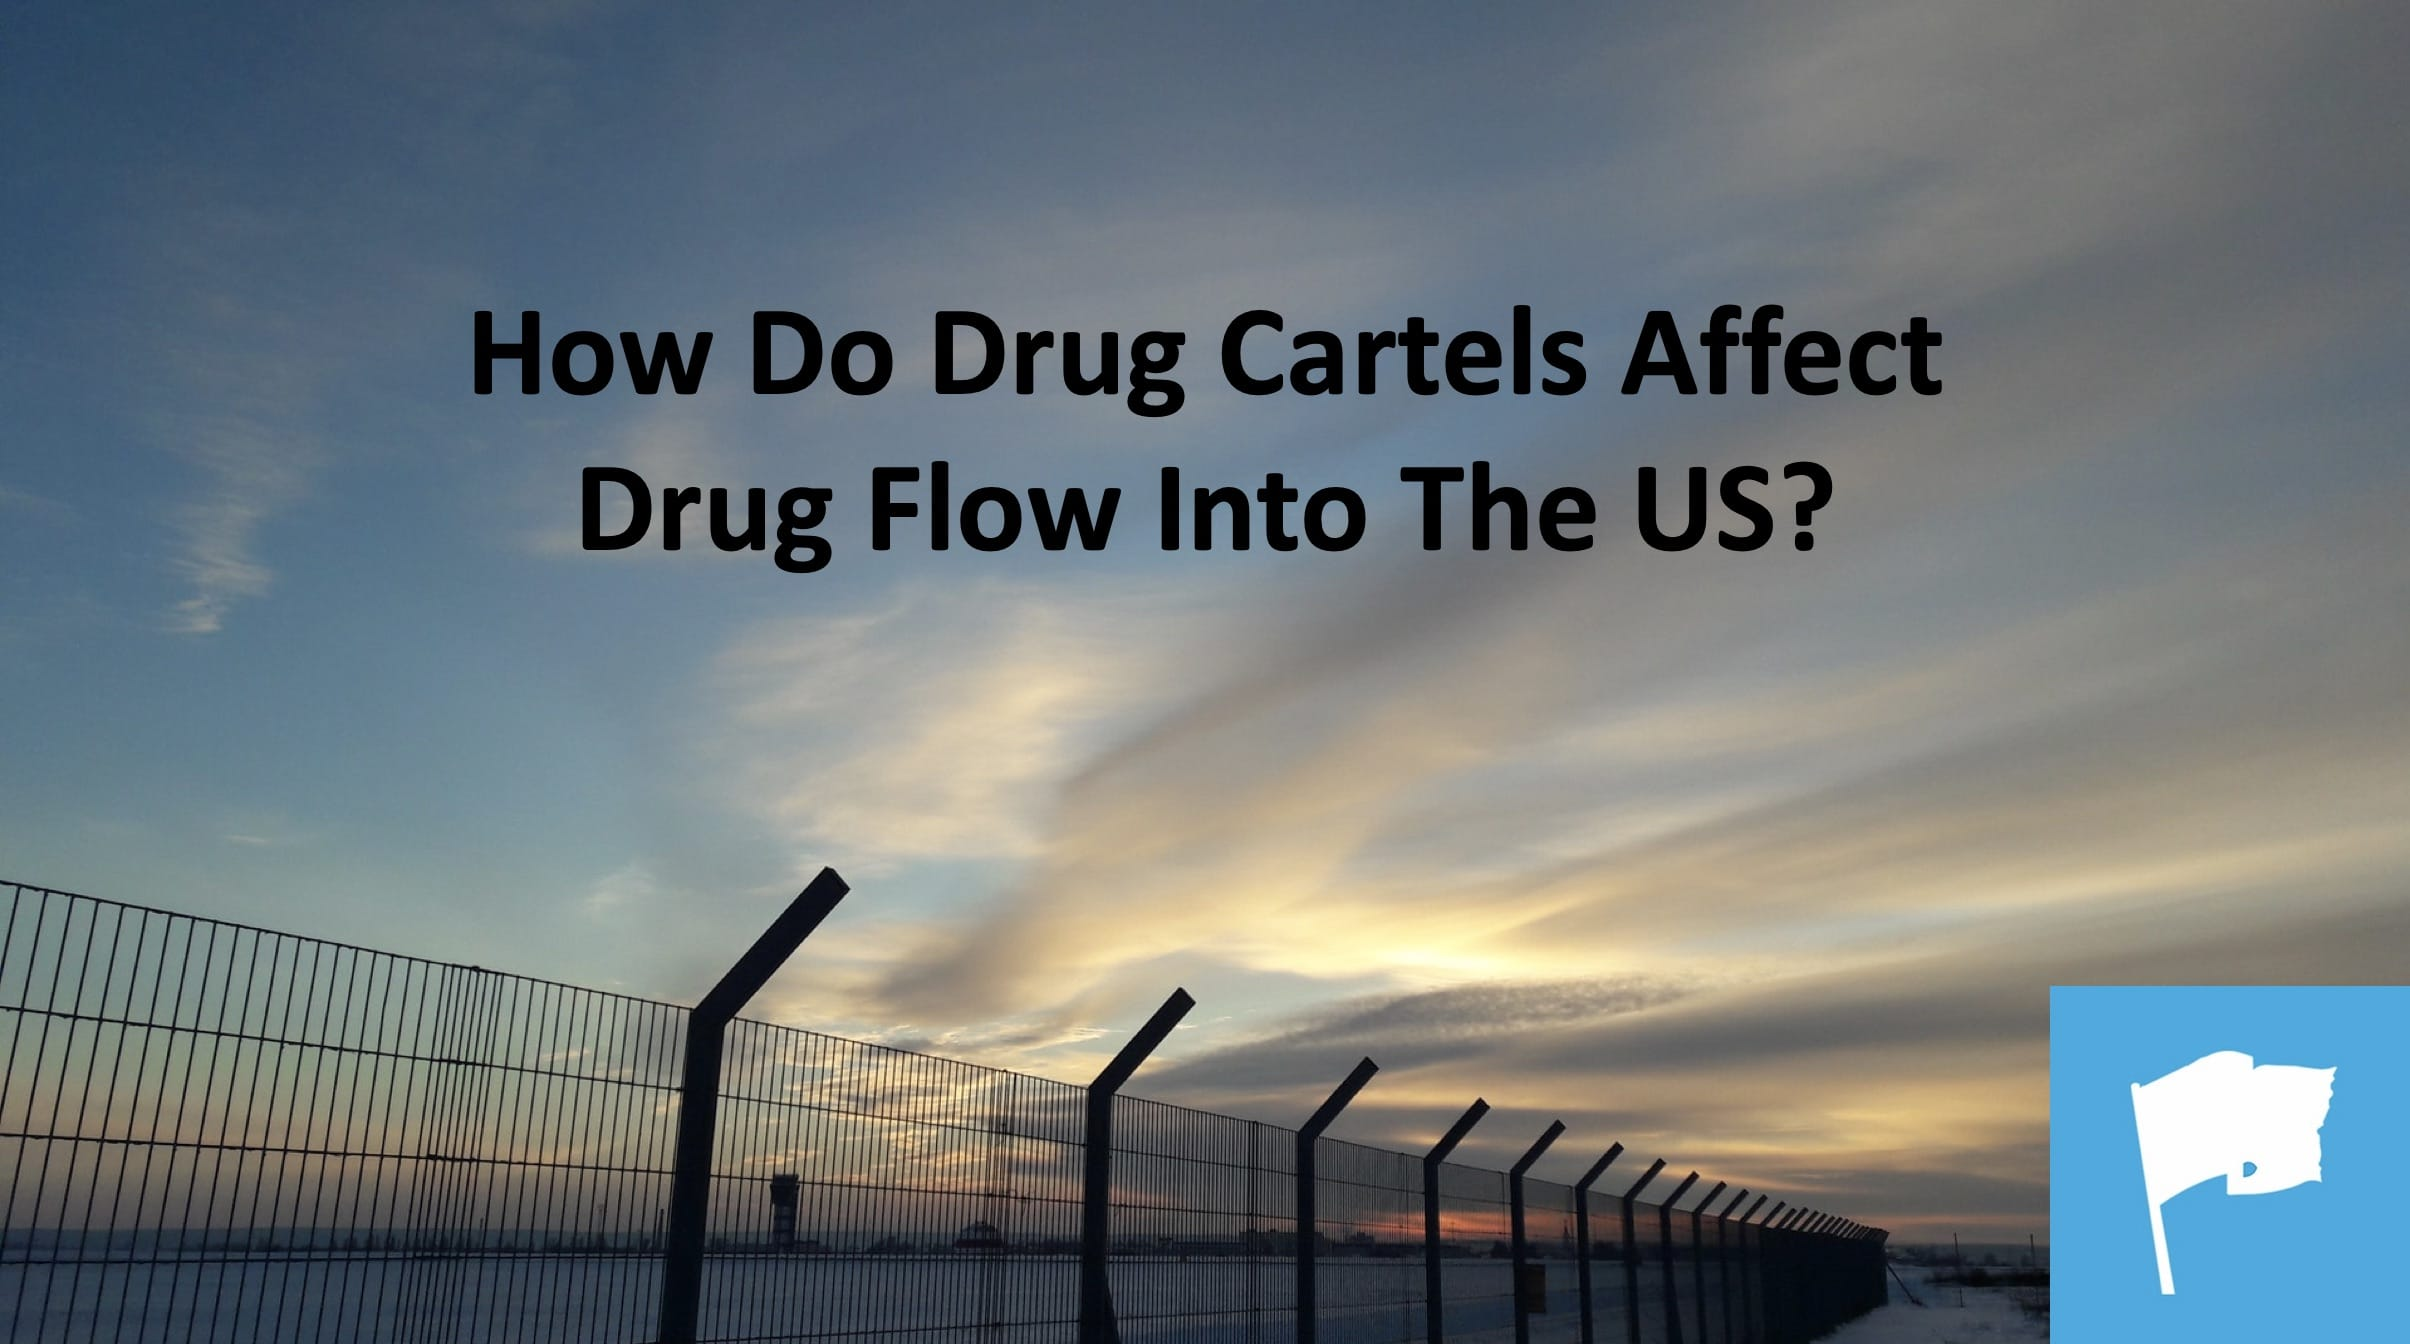 how-do-drug-cartels-affect-drug-flow-in-United-States-Texas-addiction-treatment